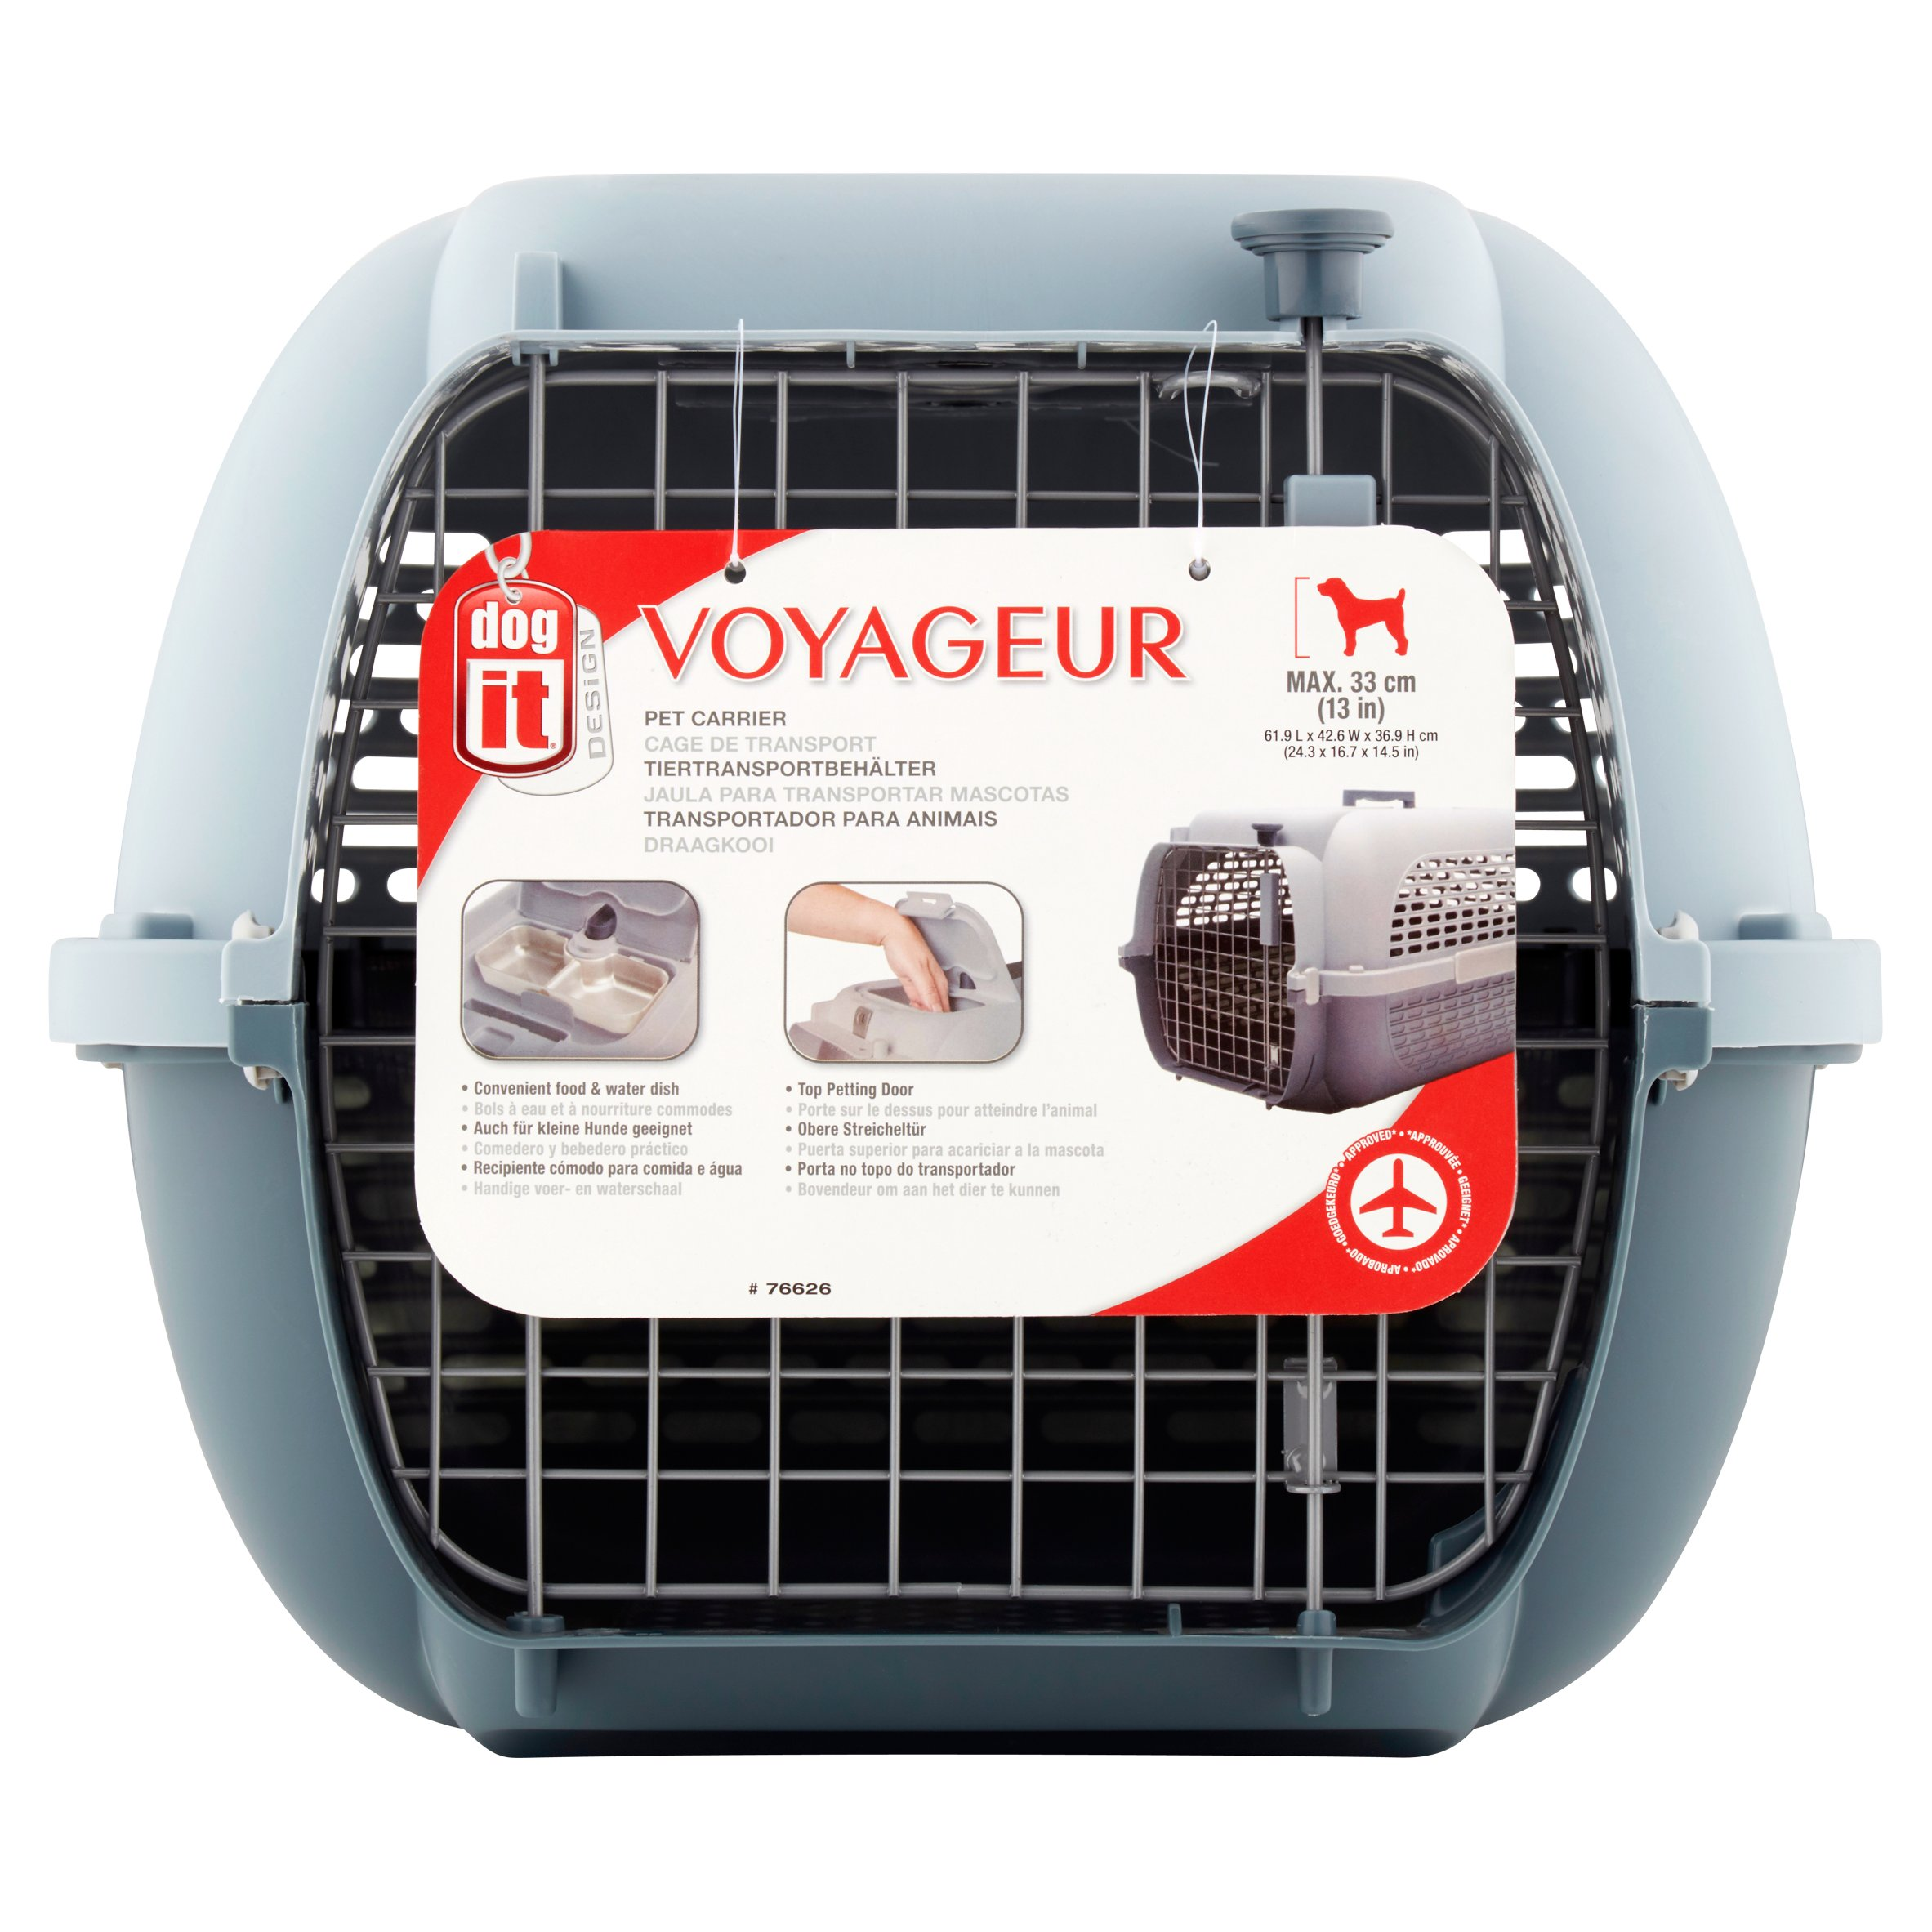 Dog It Voyageur Pet Carrier by Wal-Mart Stores, Inc.